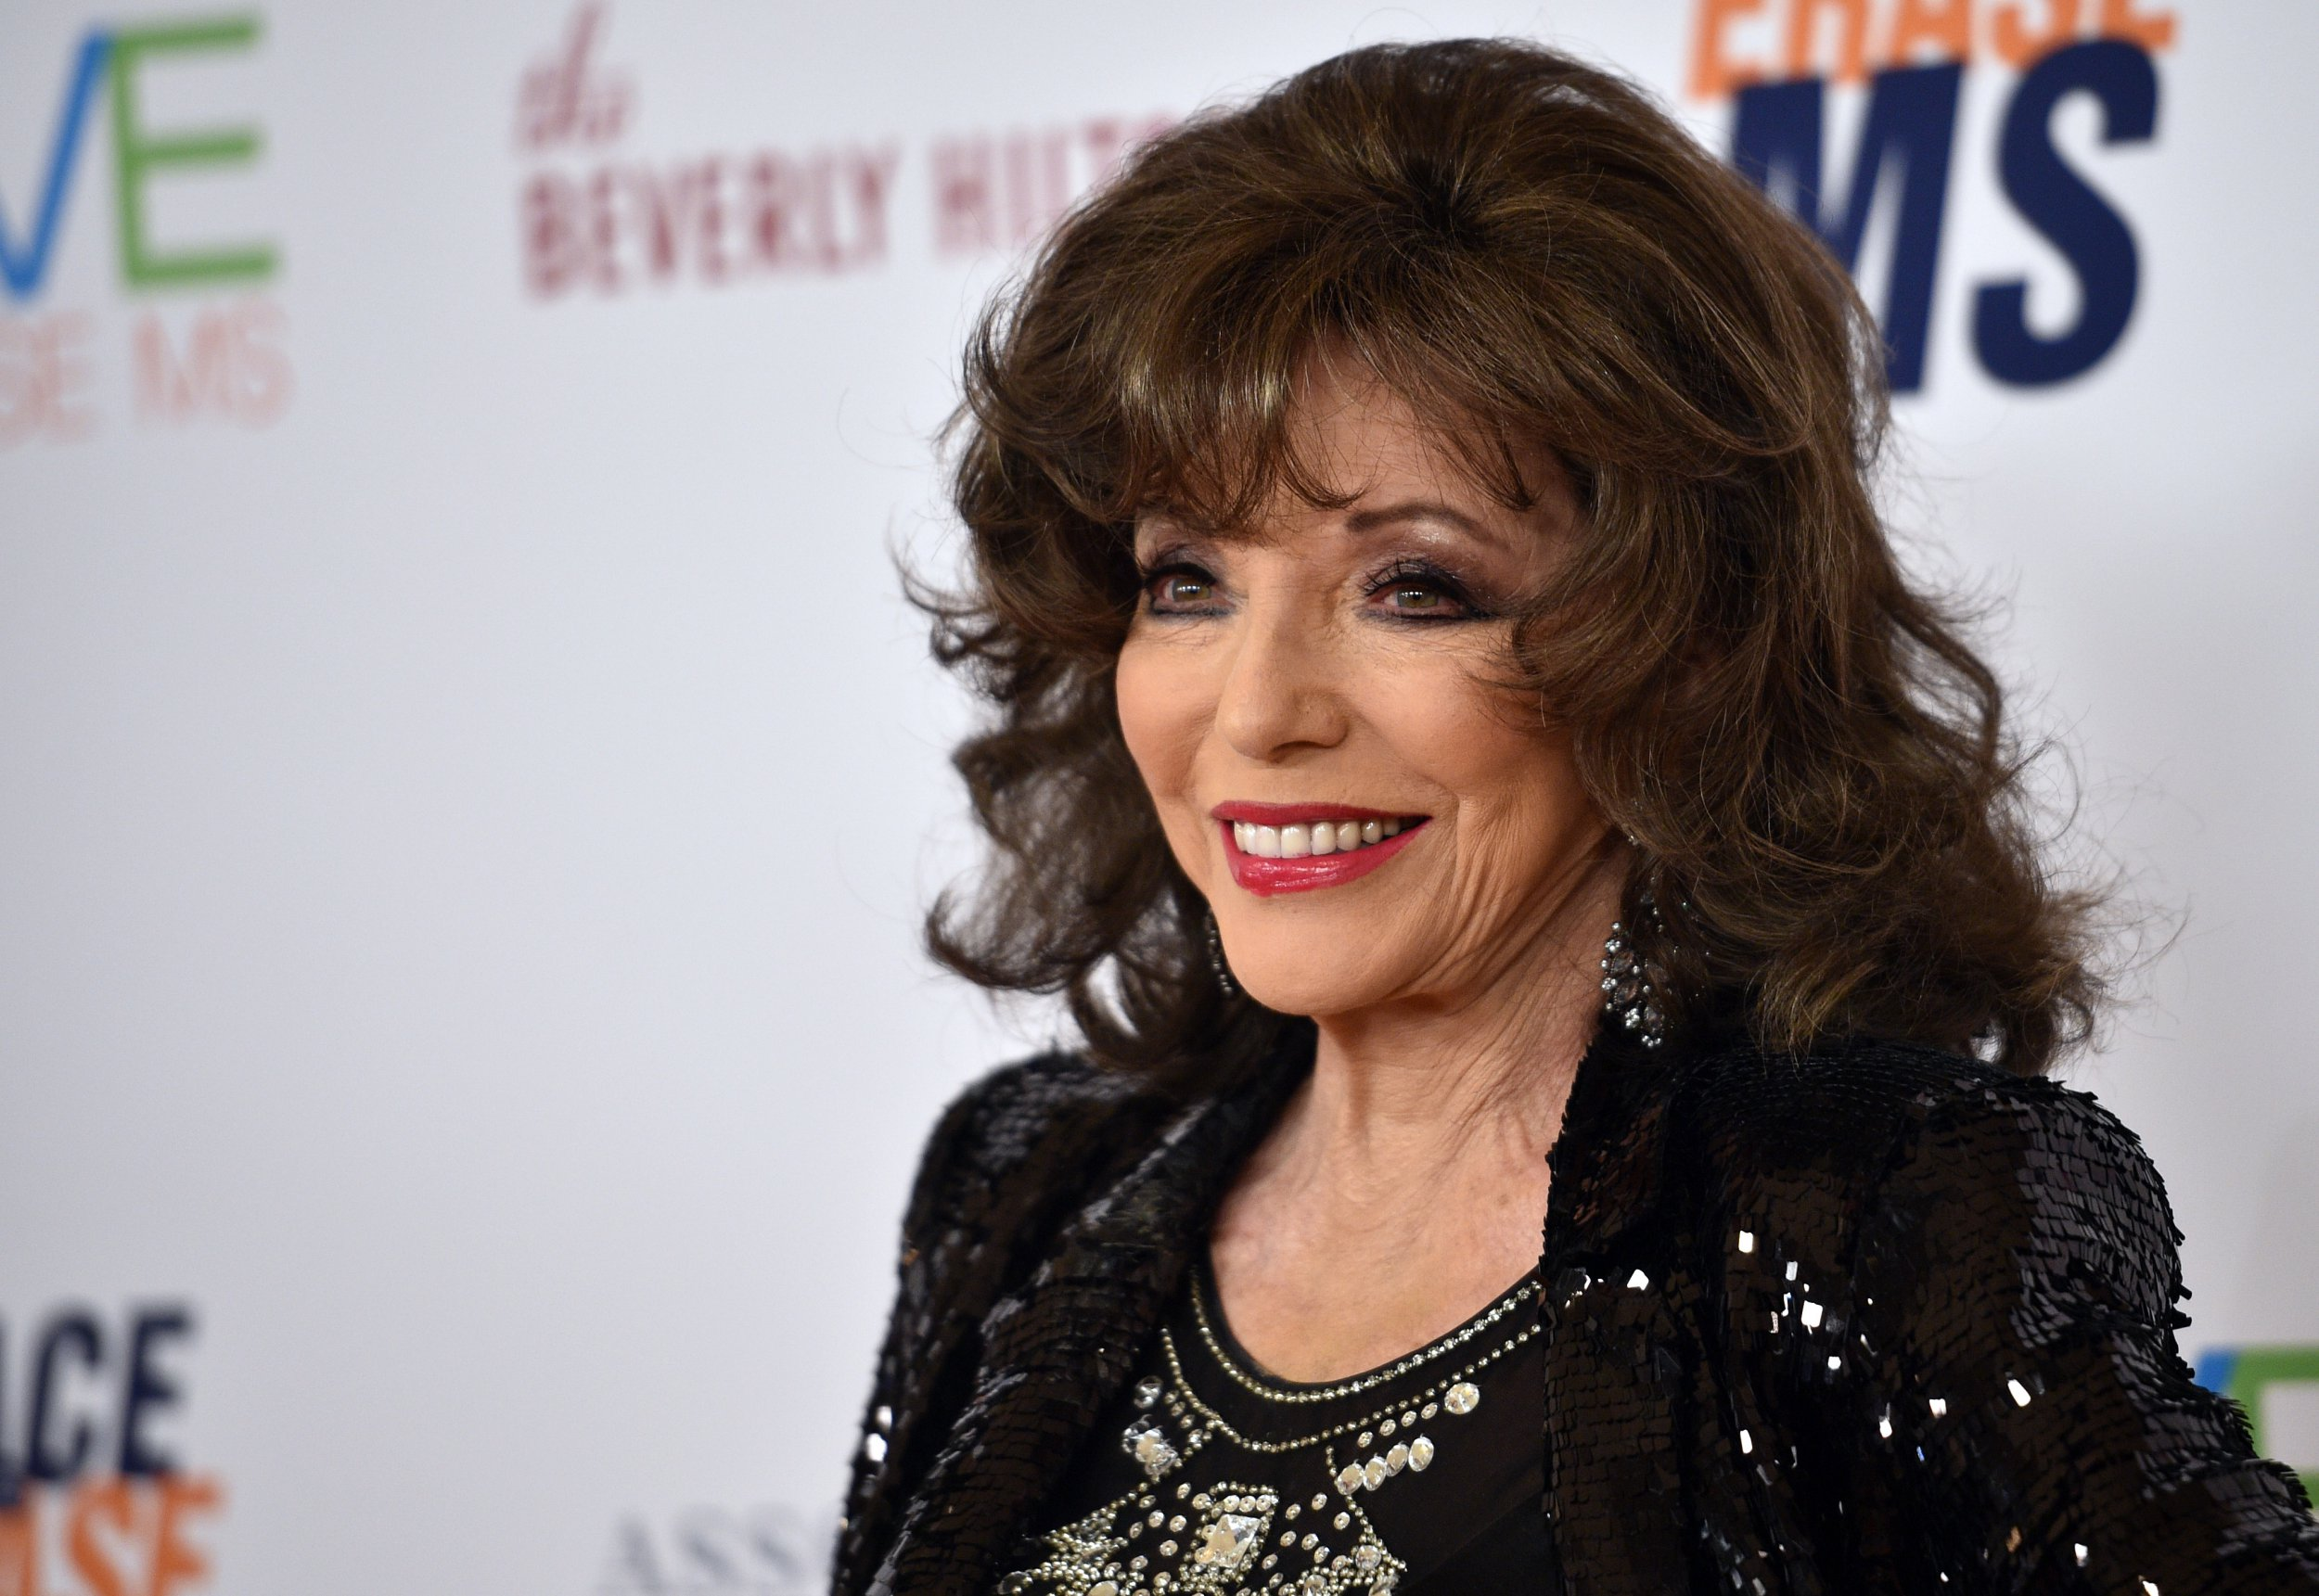 Joan Collins breaks silence on American Horror Story and teases 'glamorous' role